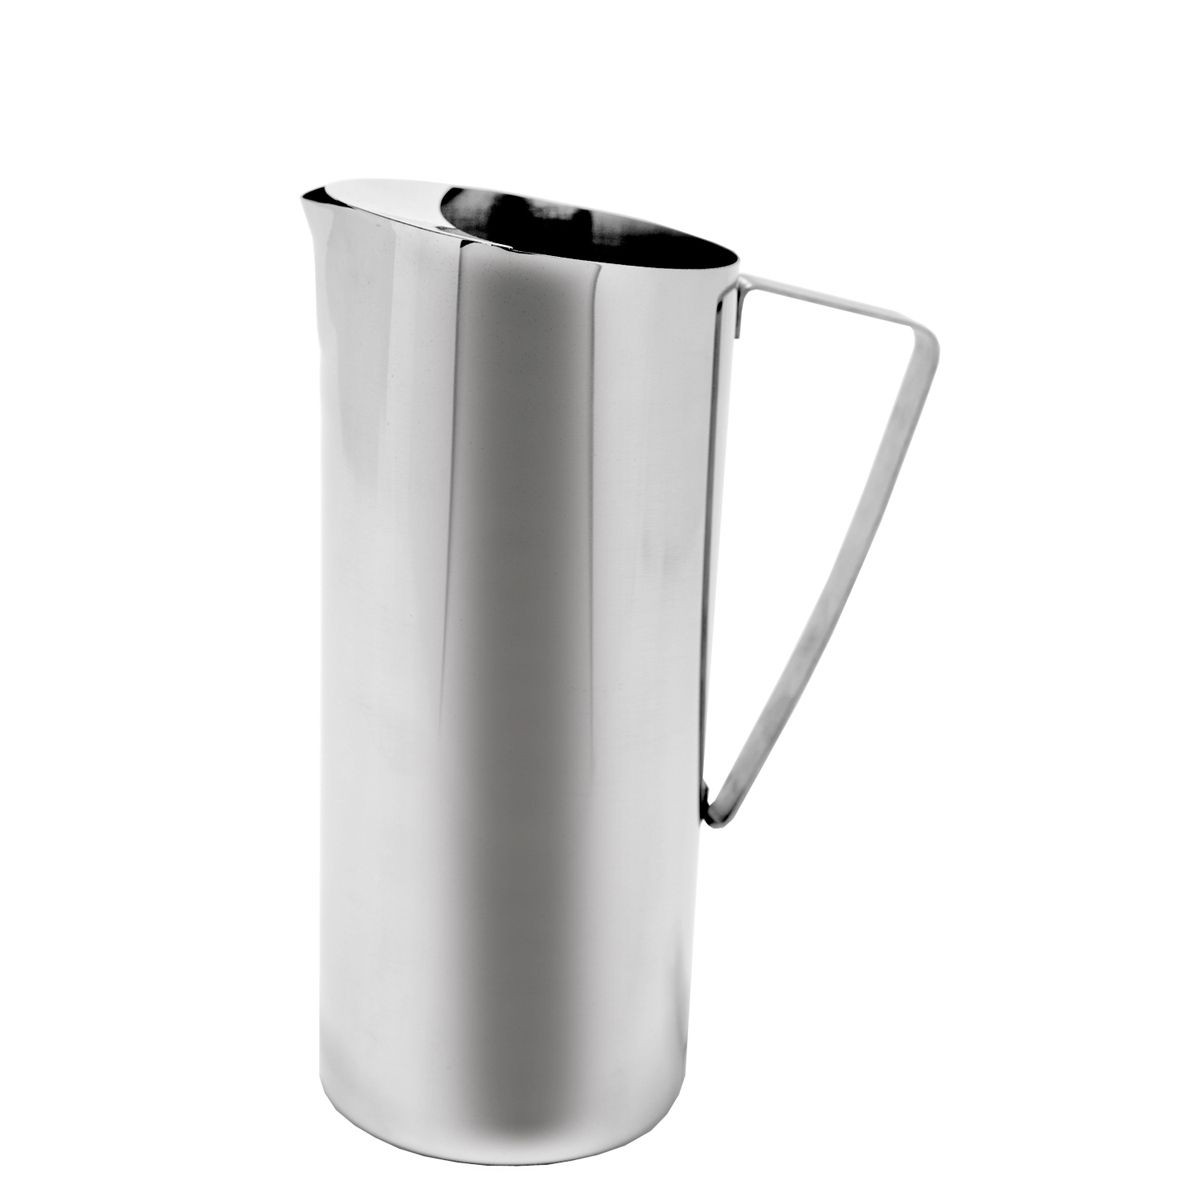 Service Ideas X7025 Chrome Finish Water Pitcher with Ice Guard, 64 oz.